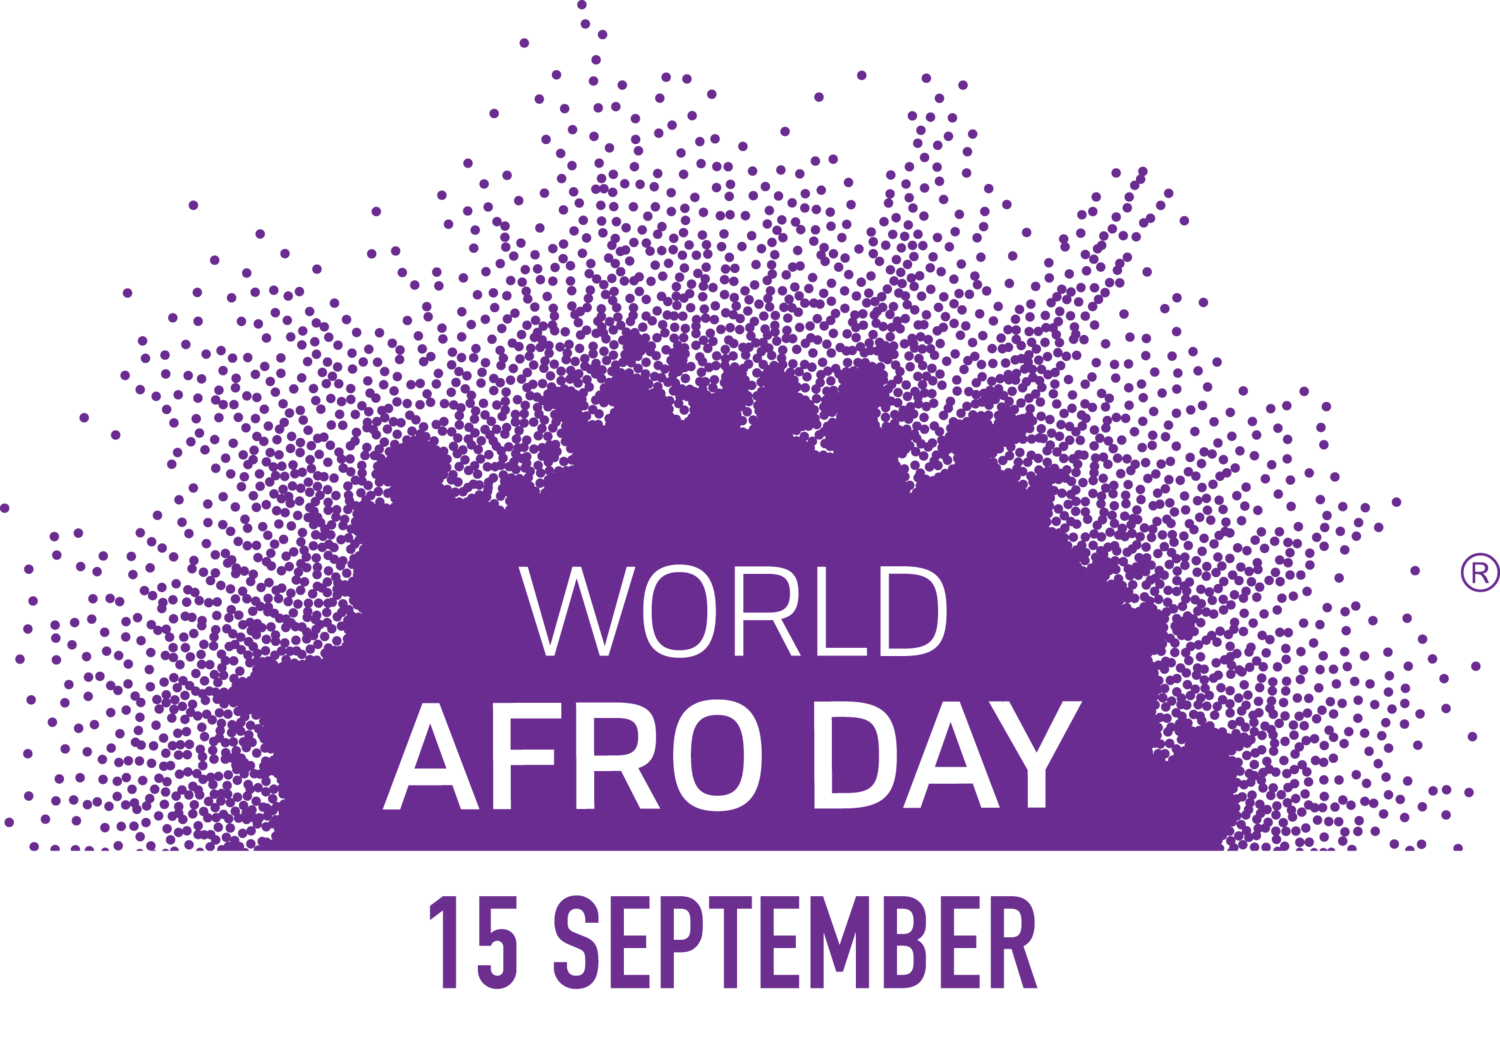 world afro day.png